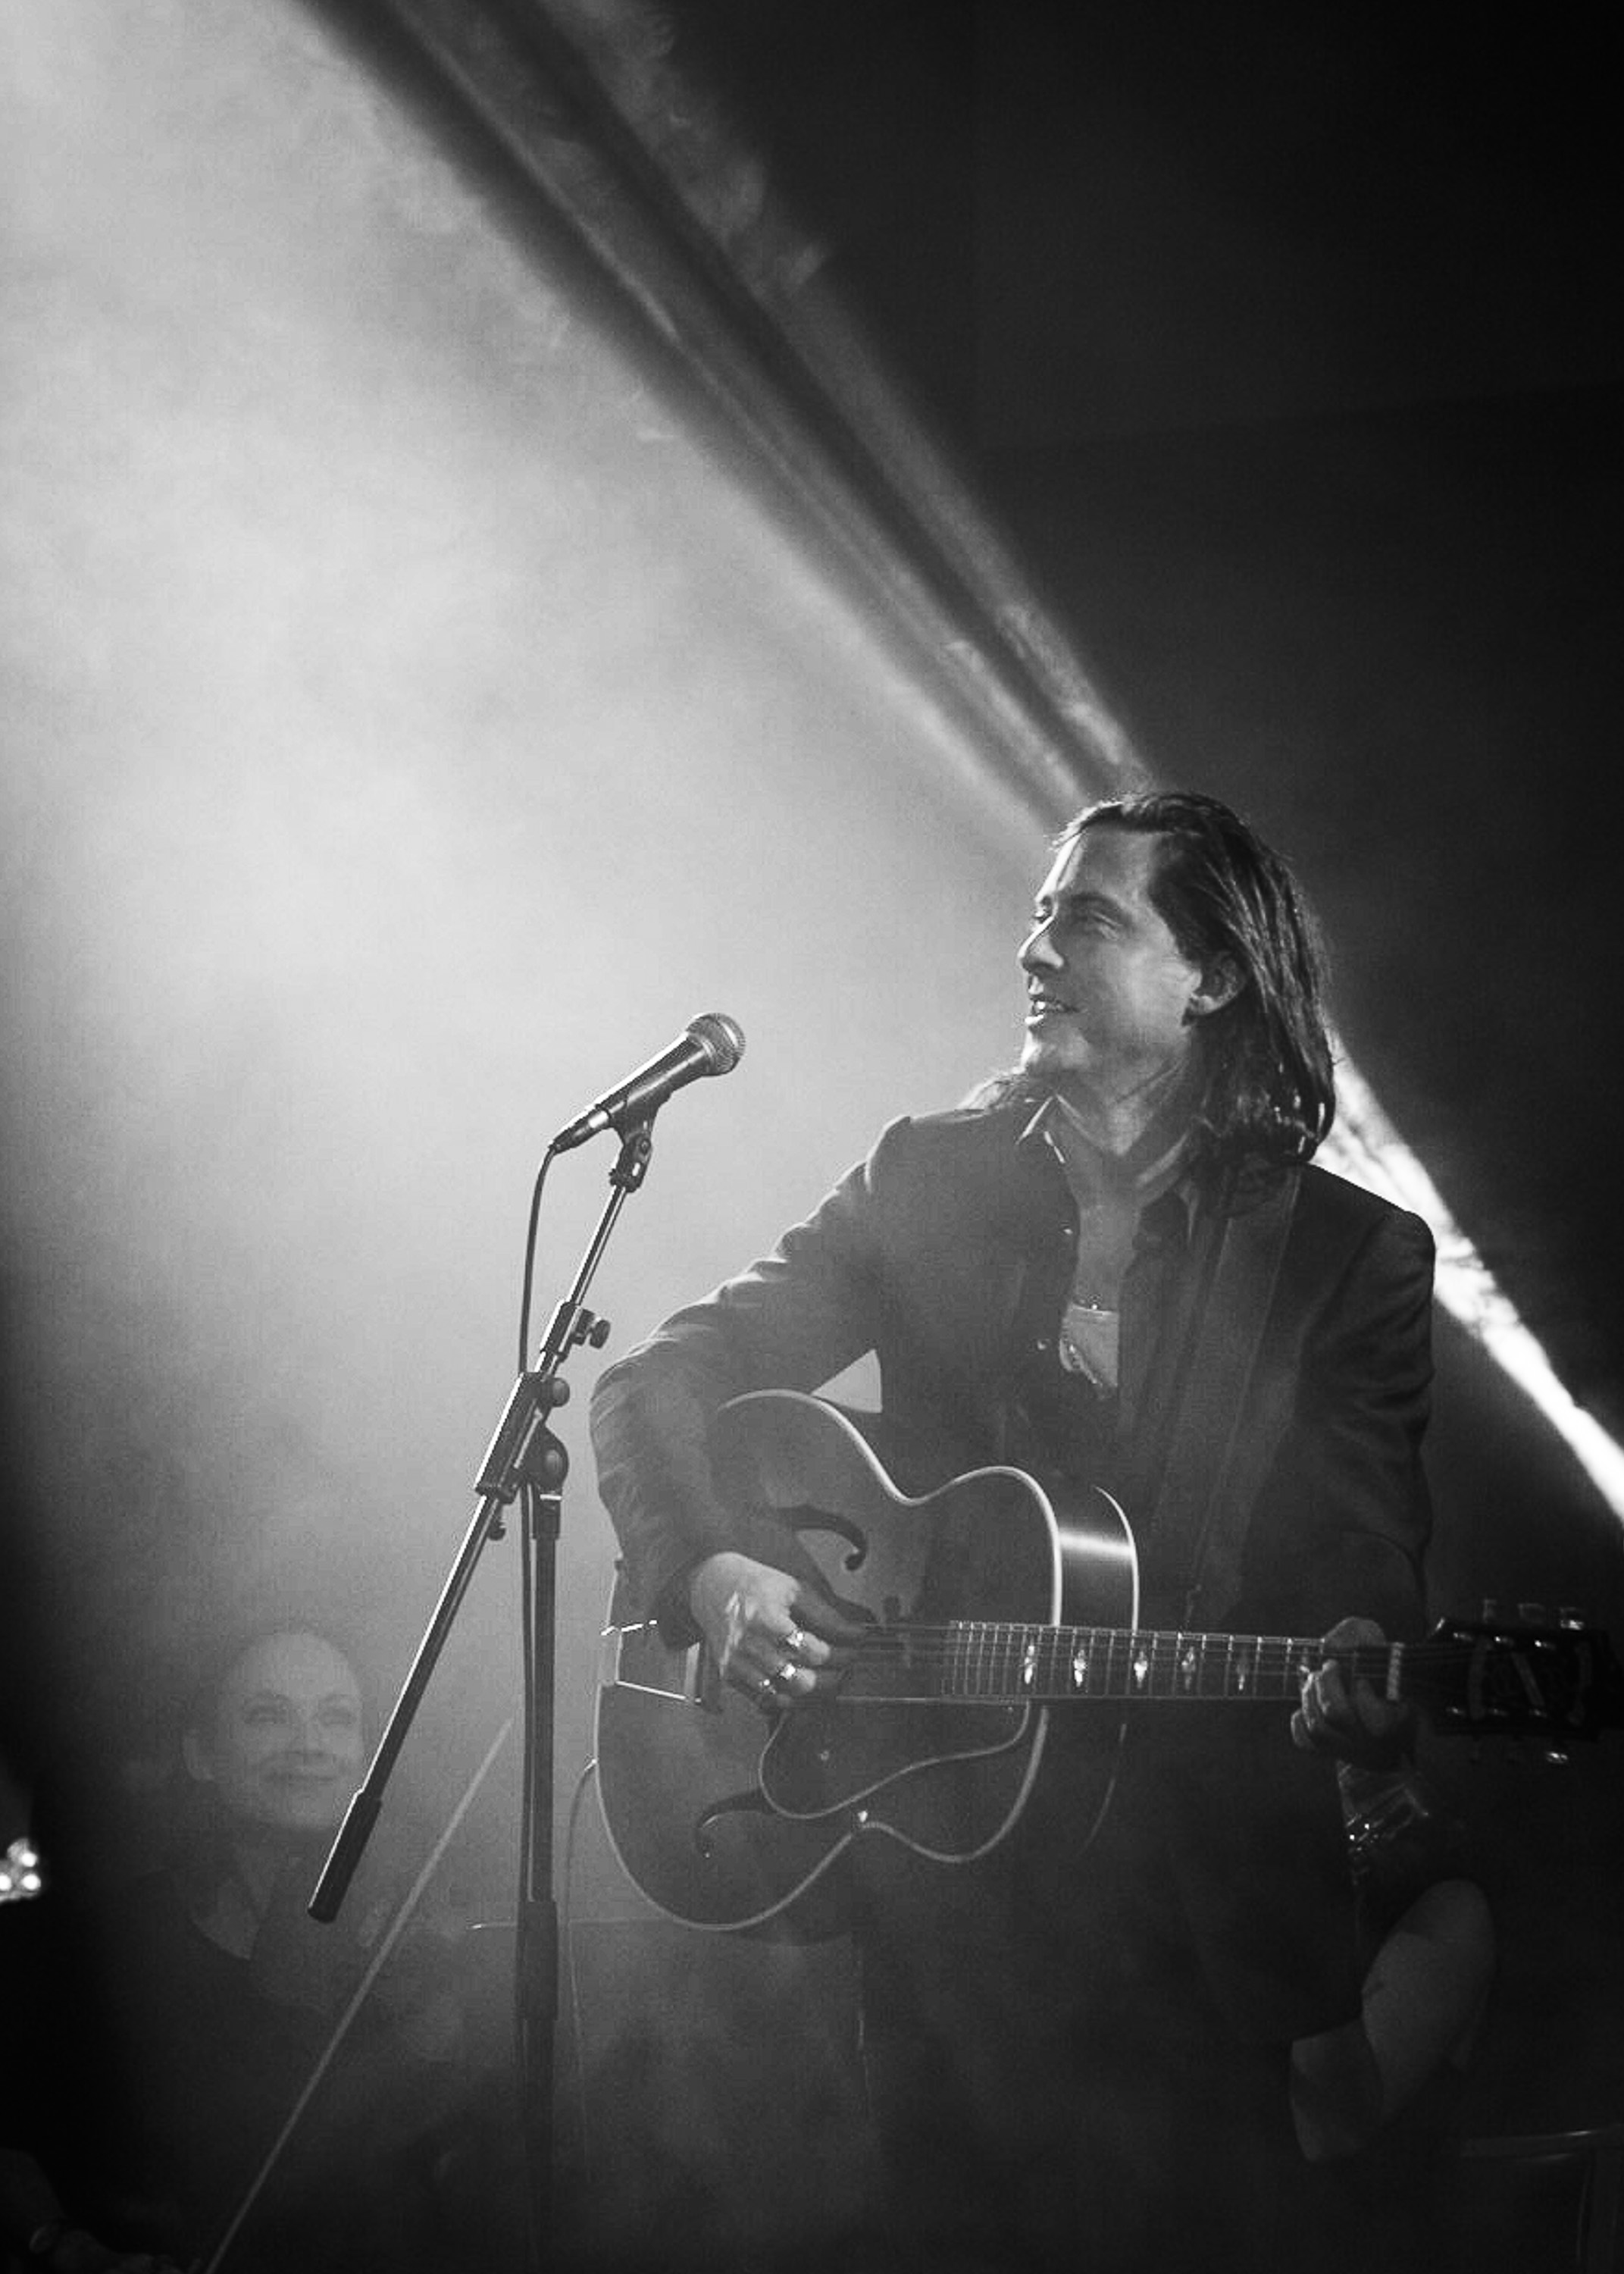 #CarlBarat at the #UnionChapel all for a great cause - @theflyingseagulluk